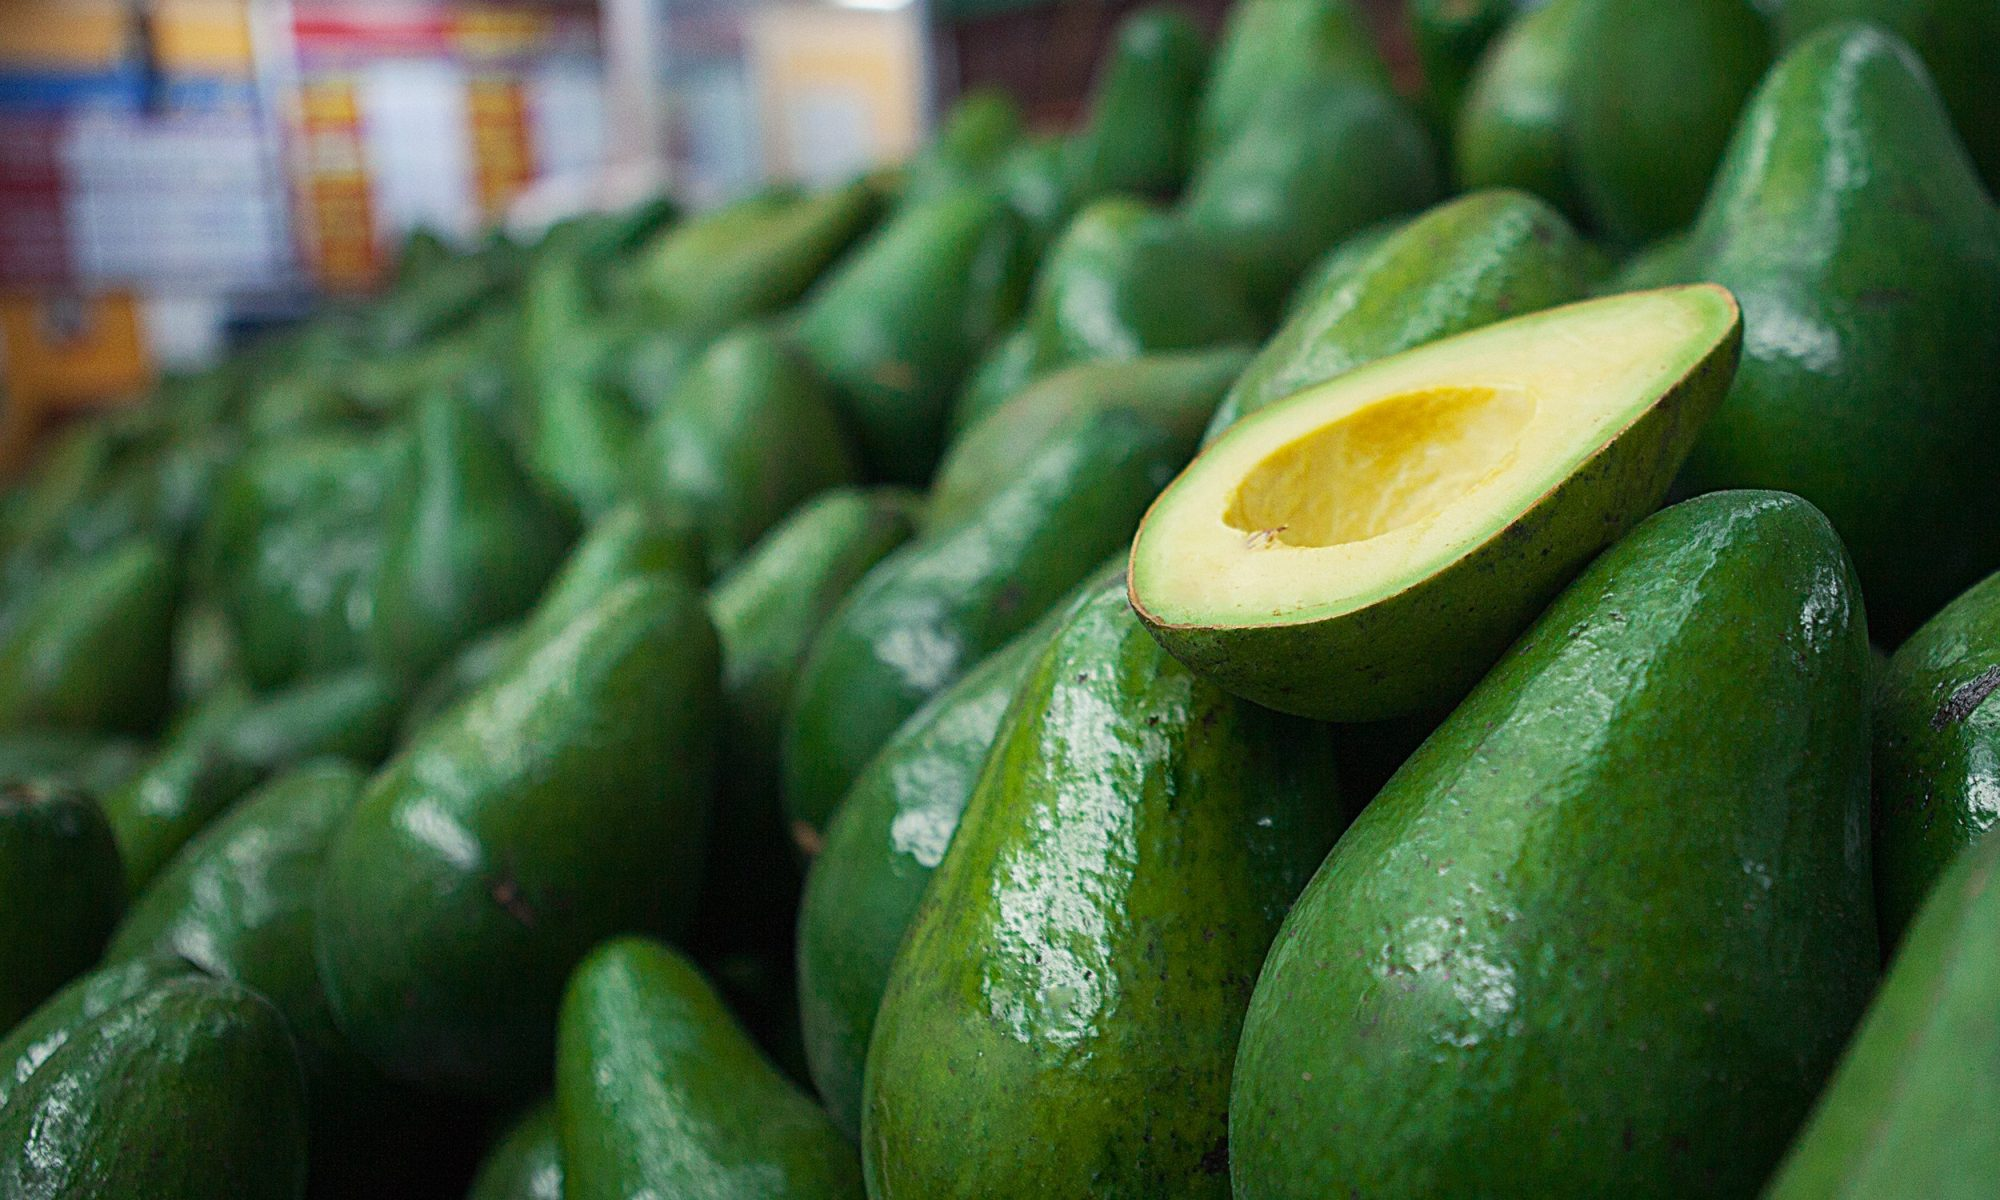 colombian avocados